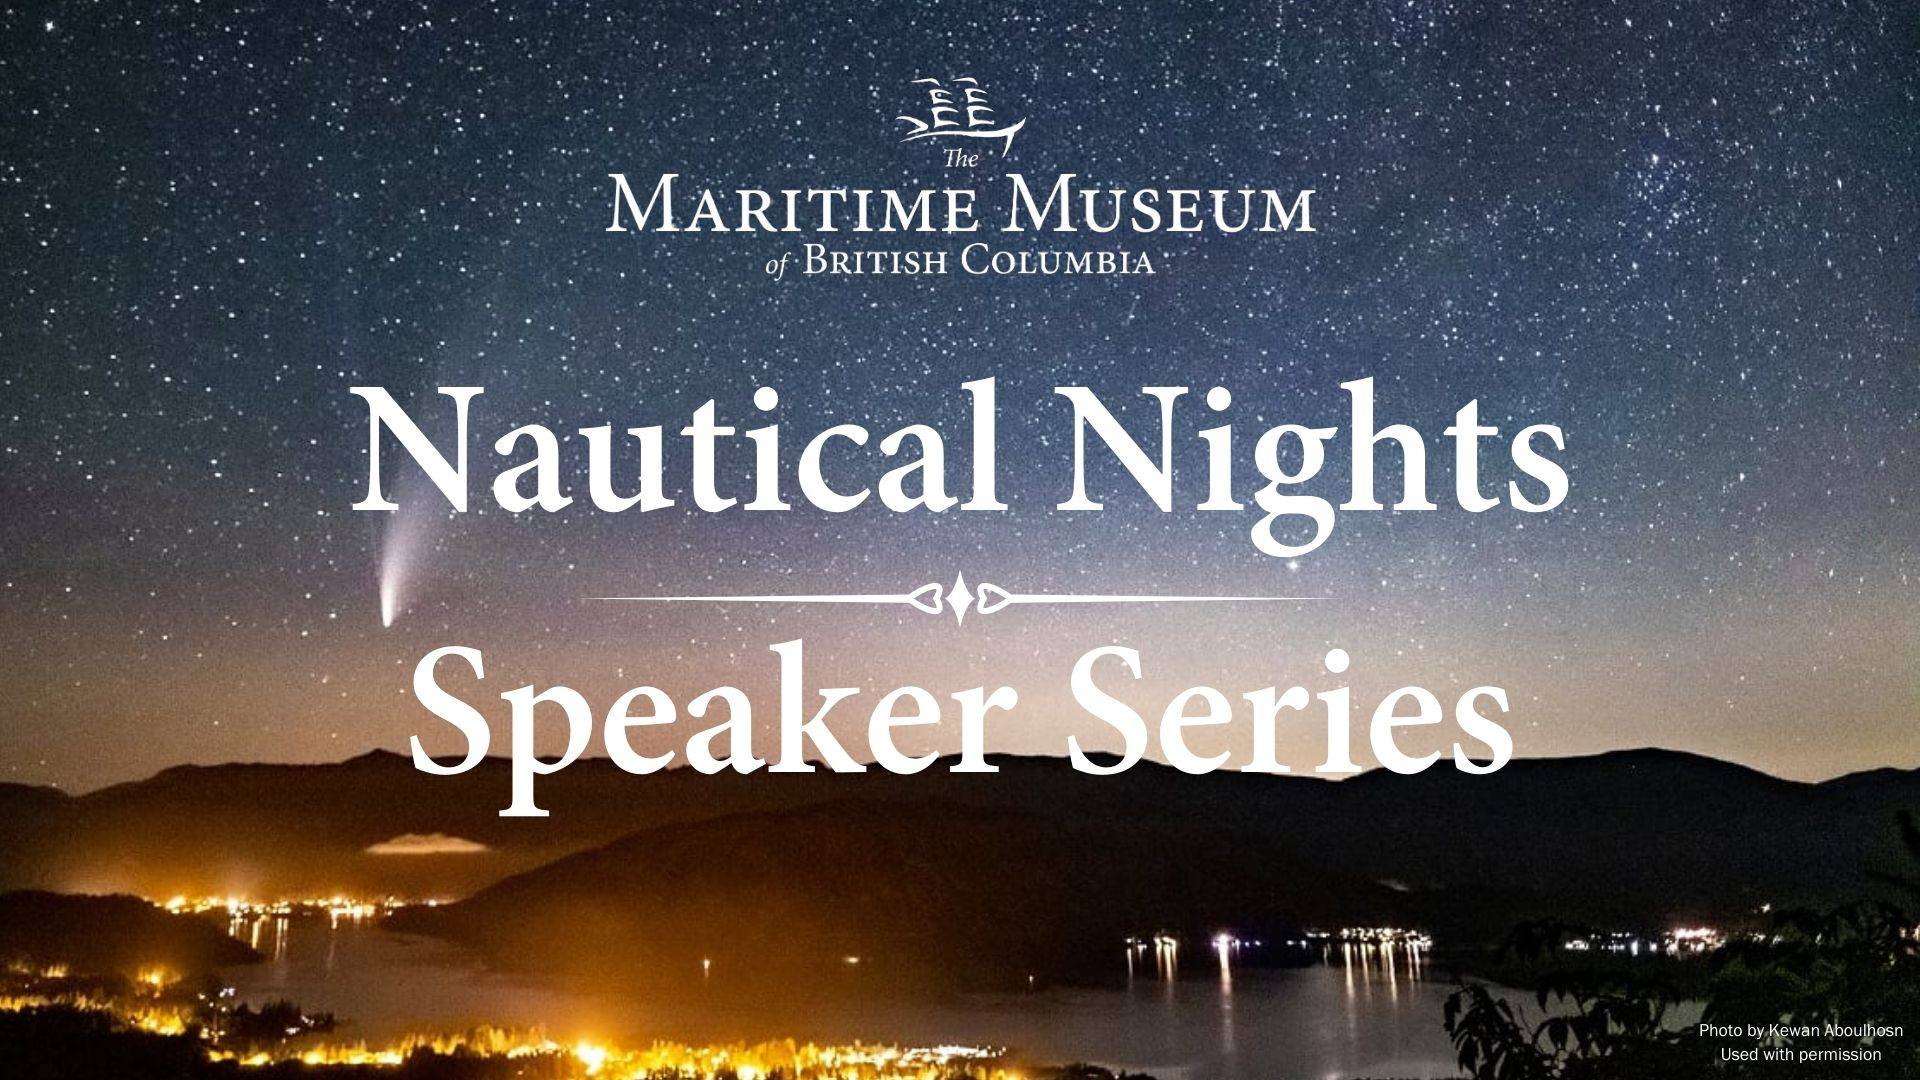 The image is of a starry night sky with a comet crossing the lower left corner. The sky is above what looks like a mountainous bay with the glow of city lights on the left side. The Words Nautical Nights Speaker Series are distributed across the middle